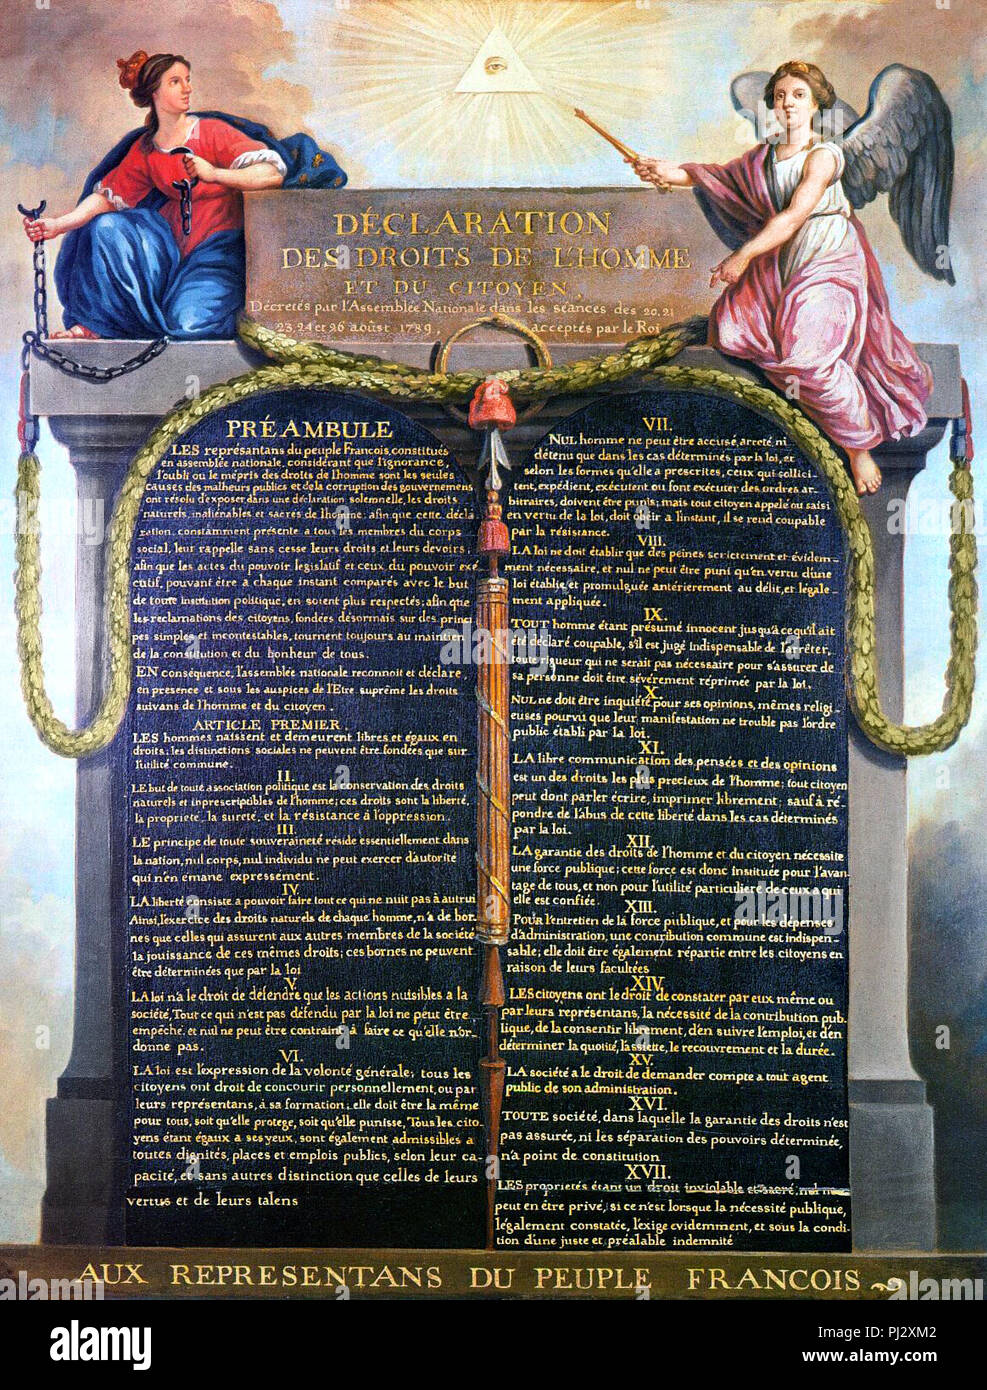 Declaration of the Rights of Man and of the Citizen in 1789 - Jean-Jacques-Francois Le Barbier - Stock Image